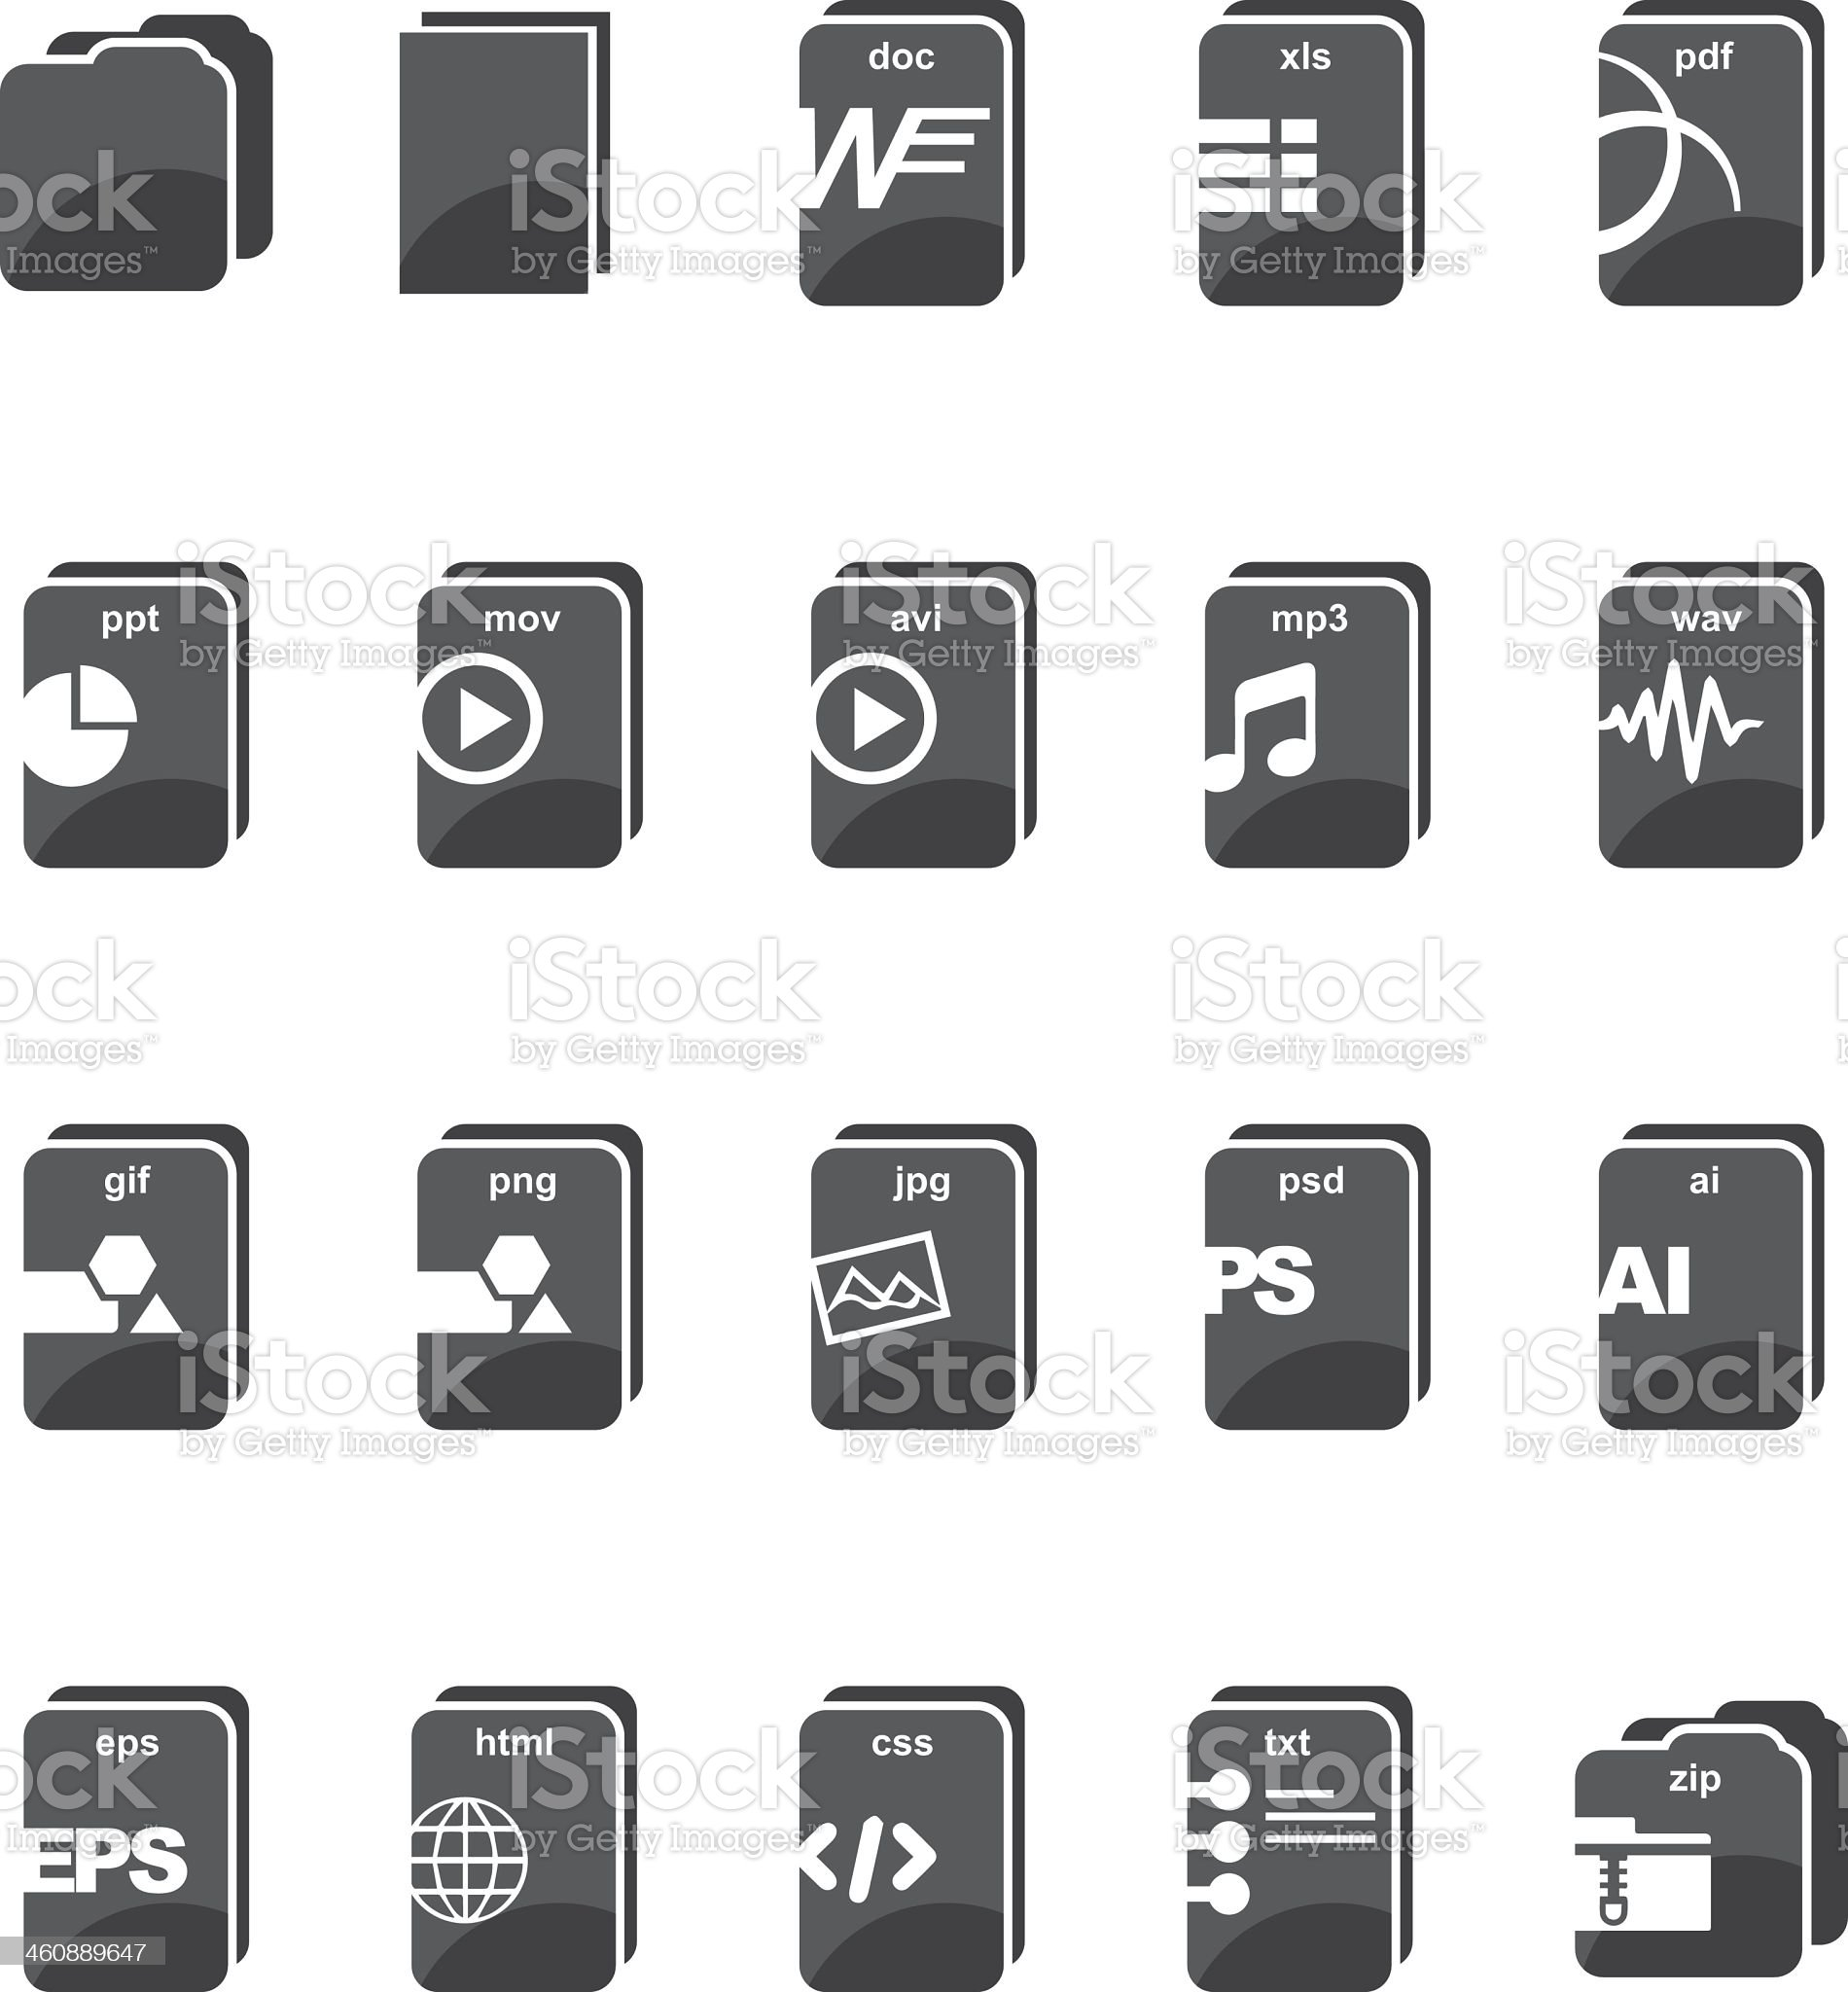 File type computer Silhouette icons royalty-free stock vector art